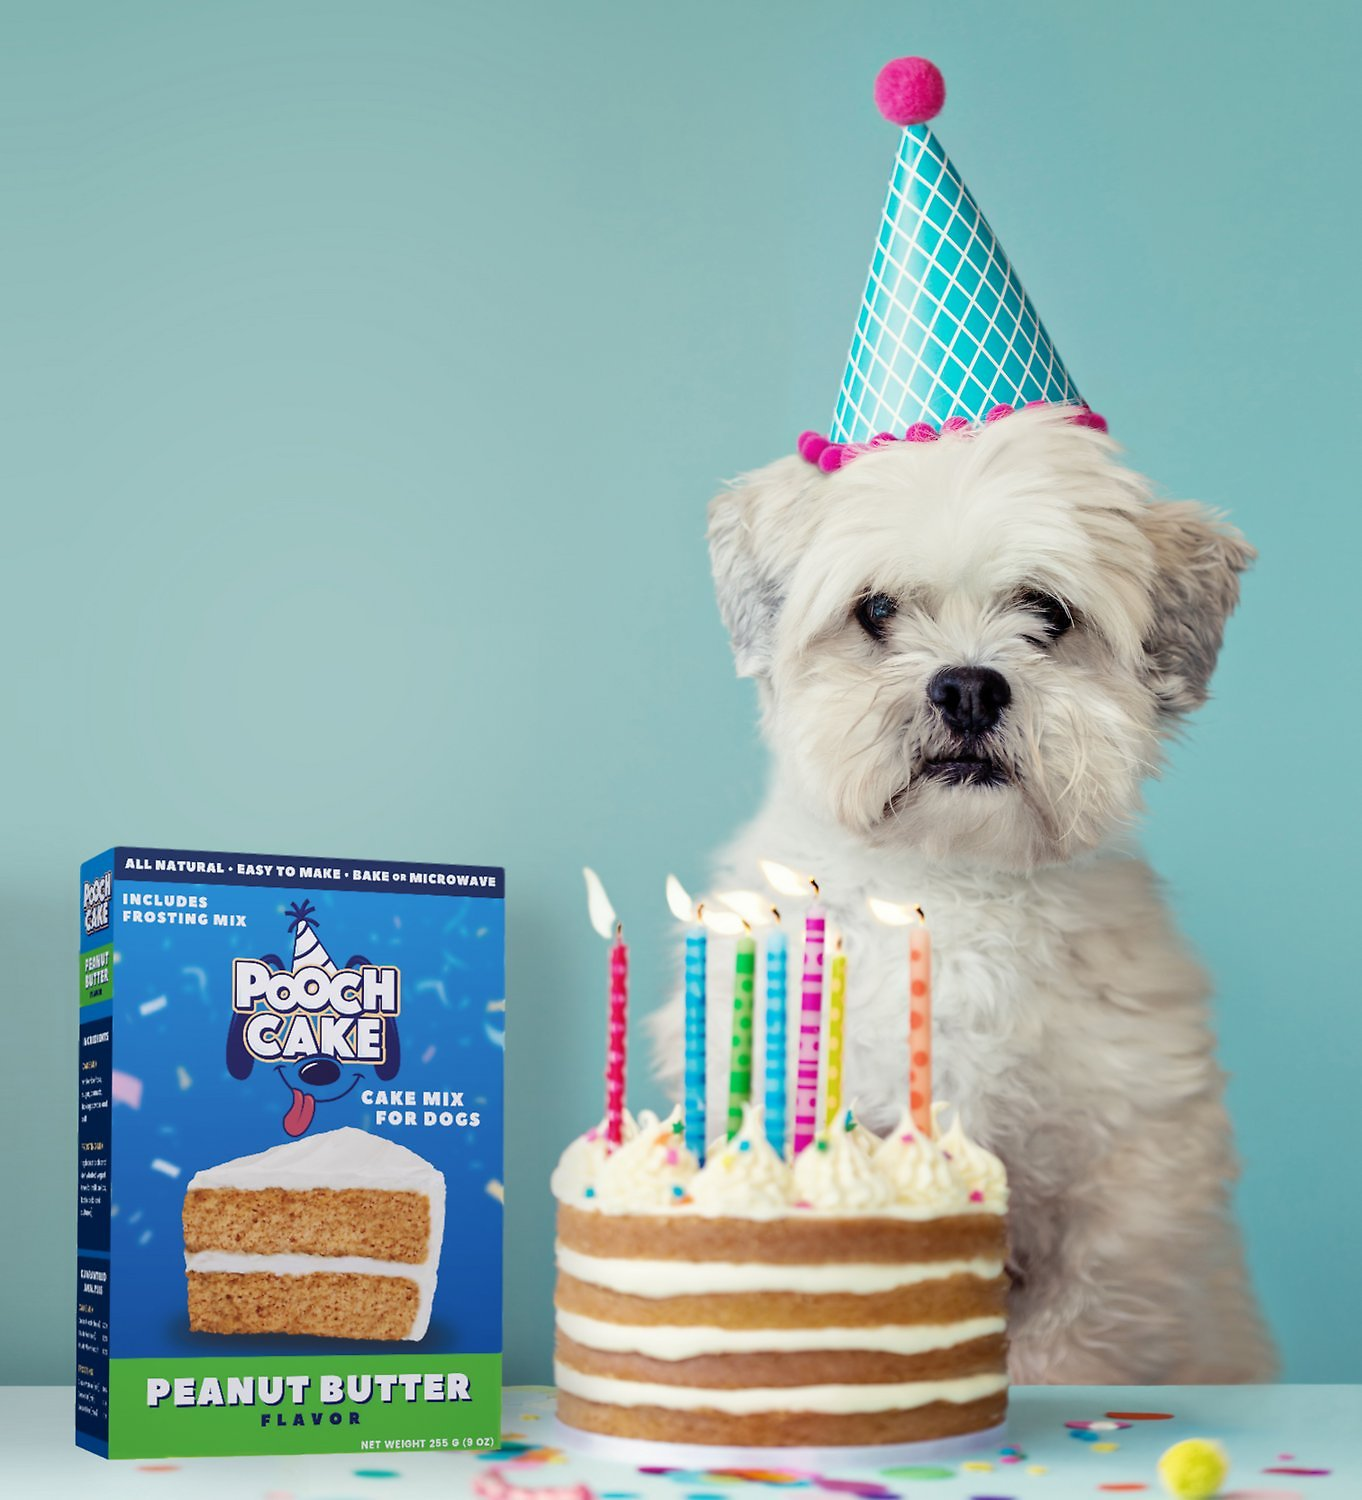 Image result for Pooch Cake Peanut Butter Flavor Birthday Cake Mix for Dogs Includes Frosting Mix, Wheat Free, 9 oz Box